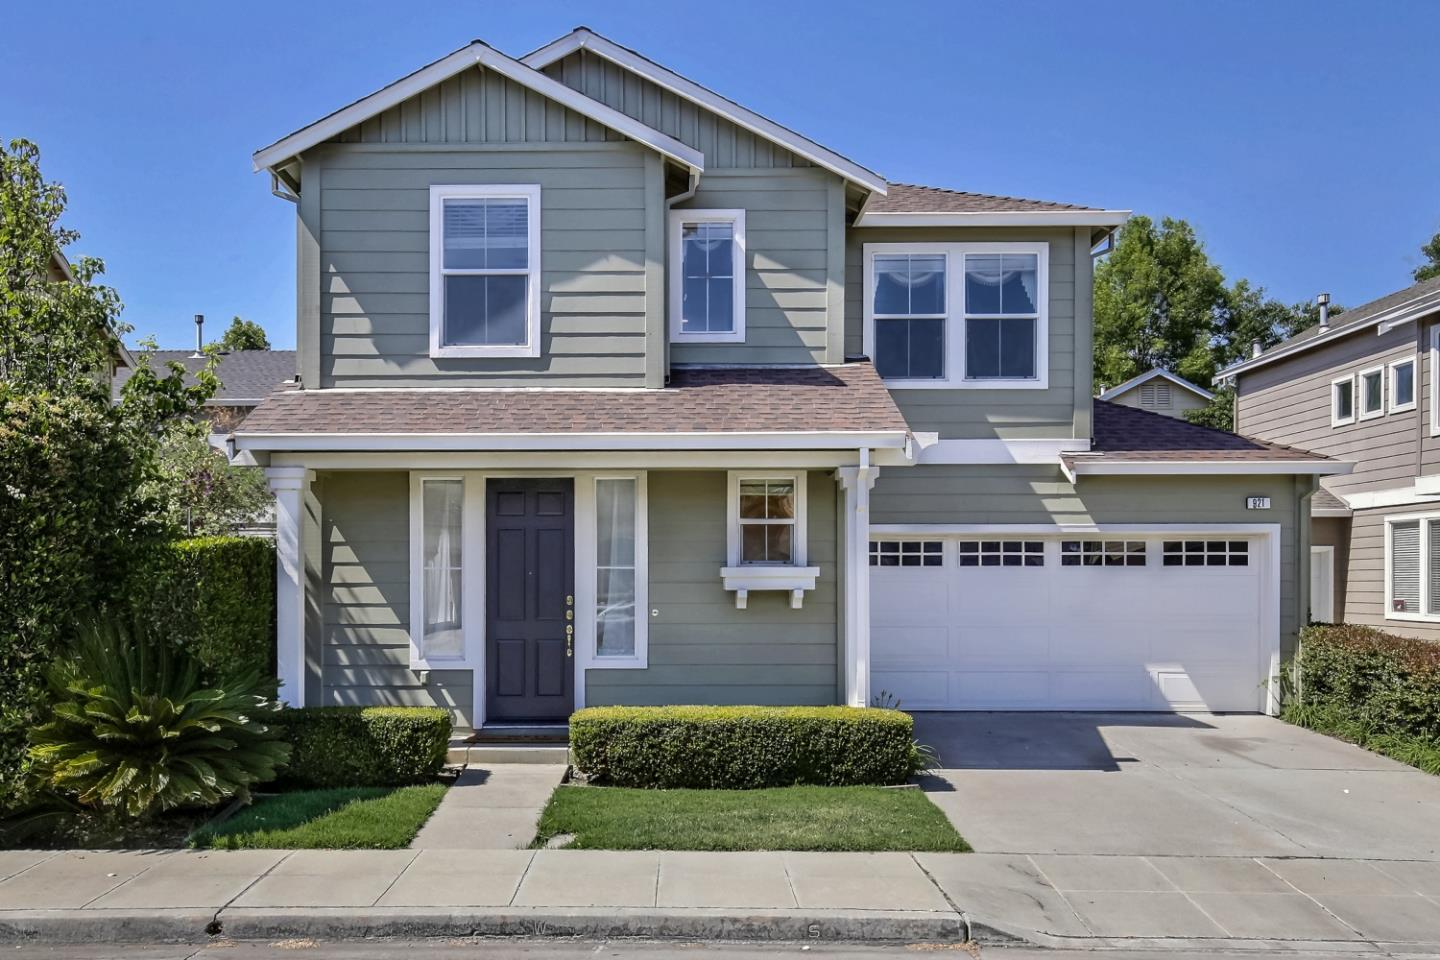 Detail Gallery Image 1 of 46 For 921 Baines St, East Palo Alto,  CA 94303 - 4 Beds | 2/1 Baths